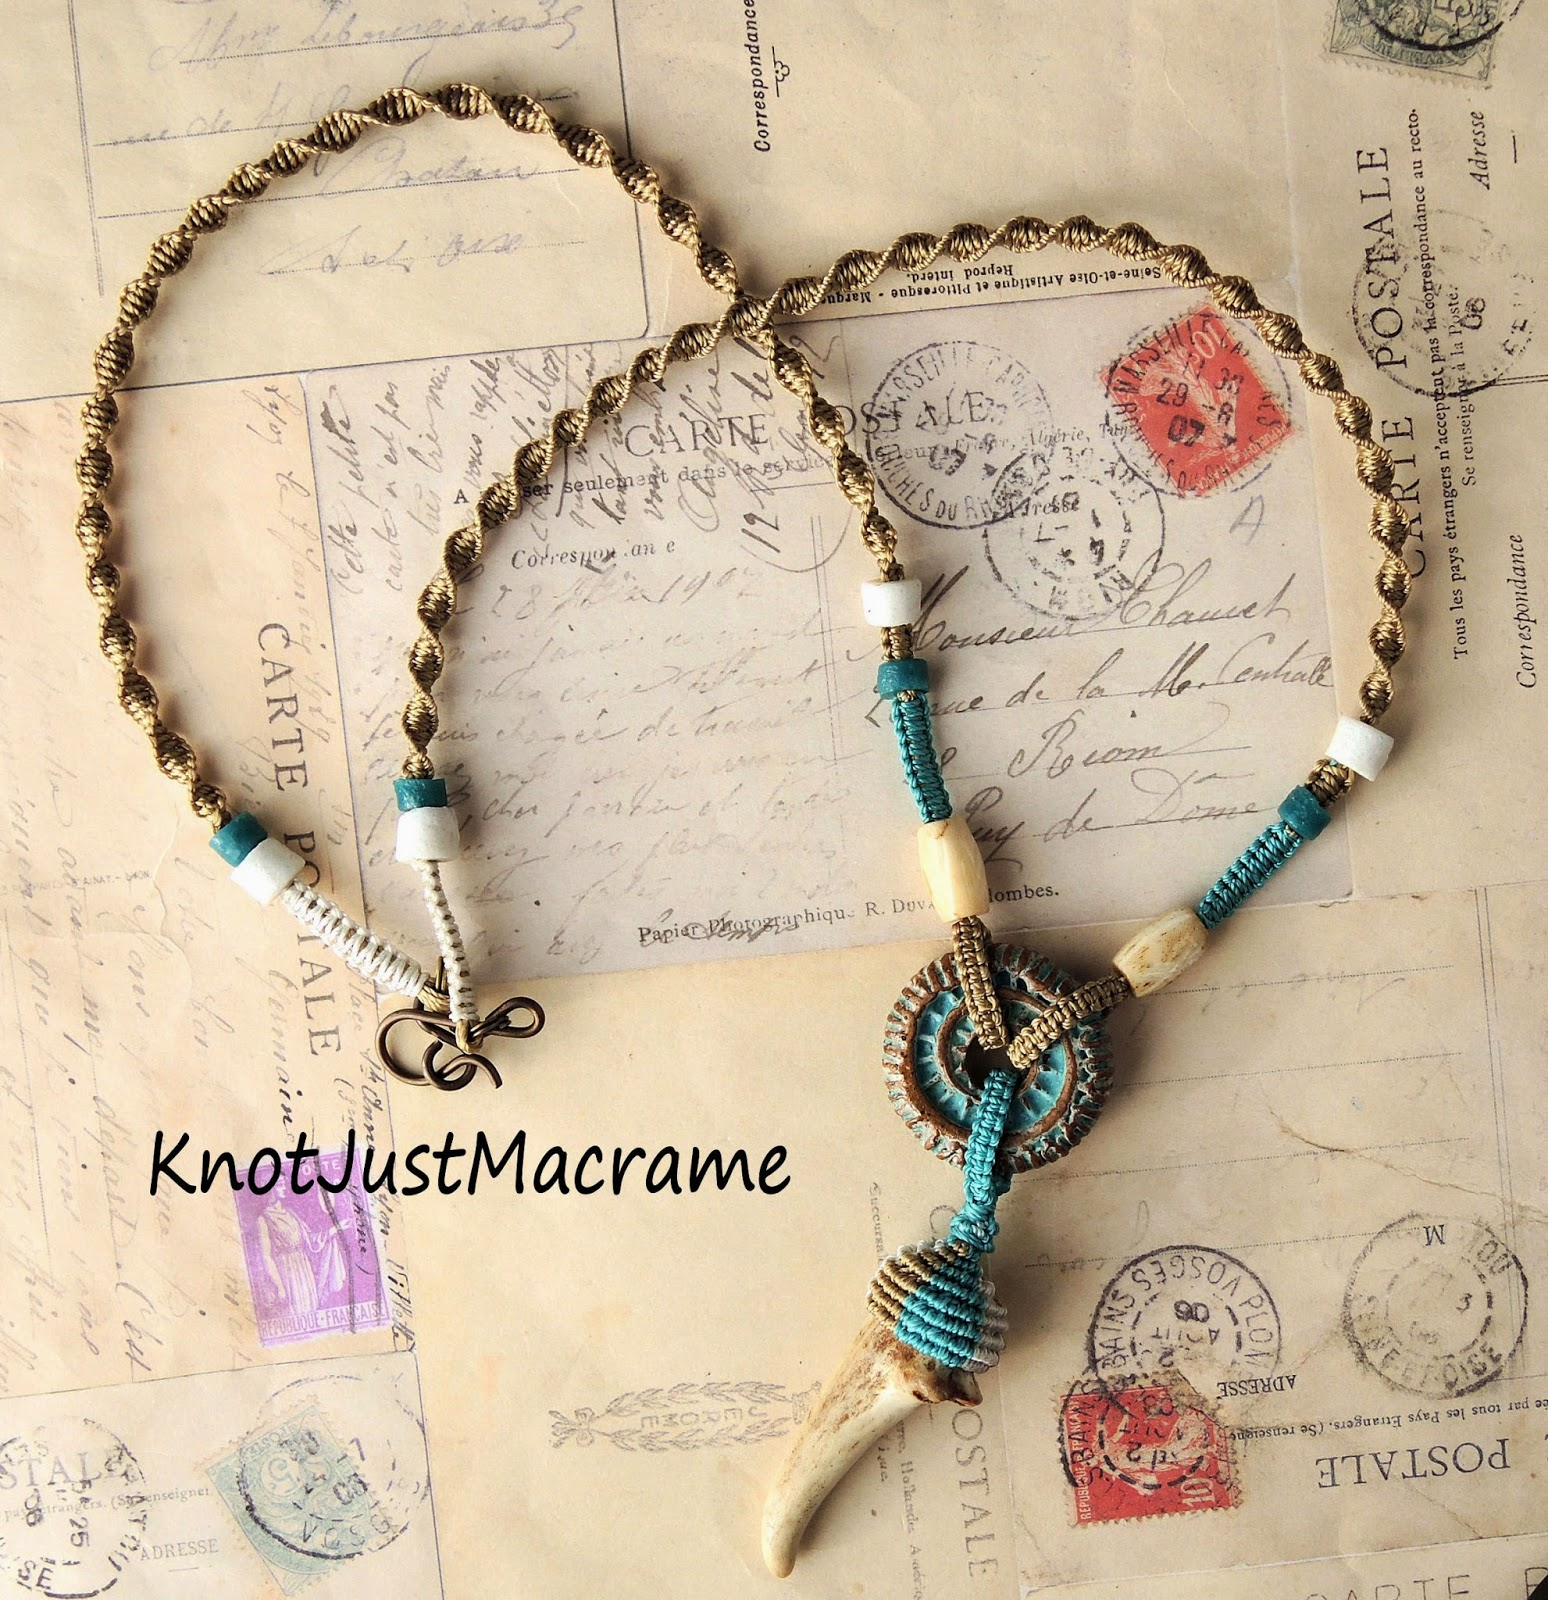 Deer antler pendant micro macrame necklace from Knot Just Macrame